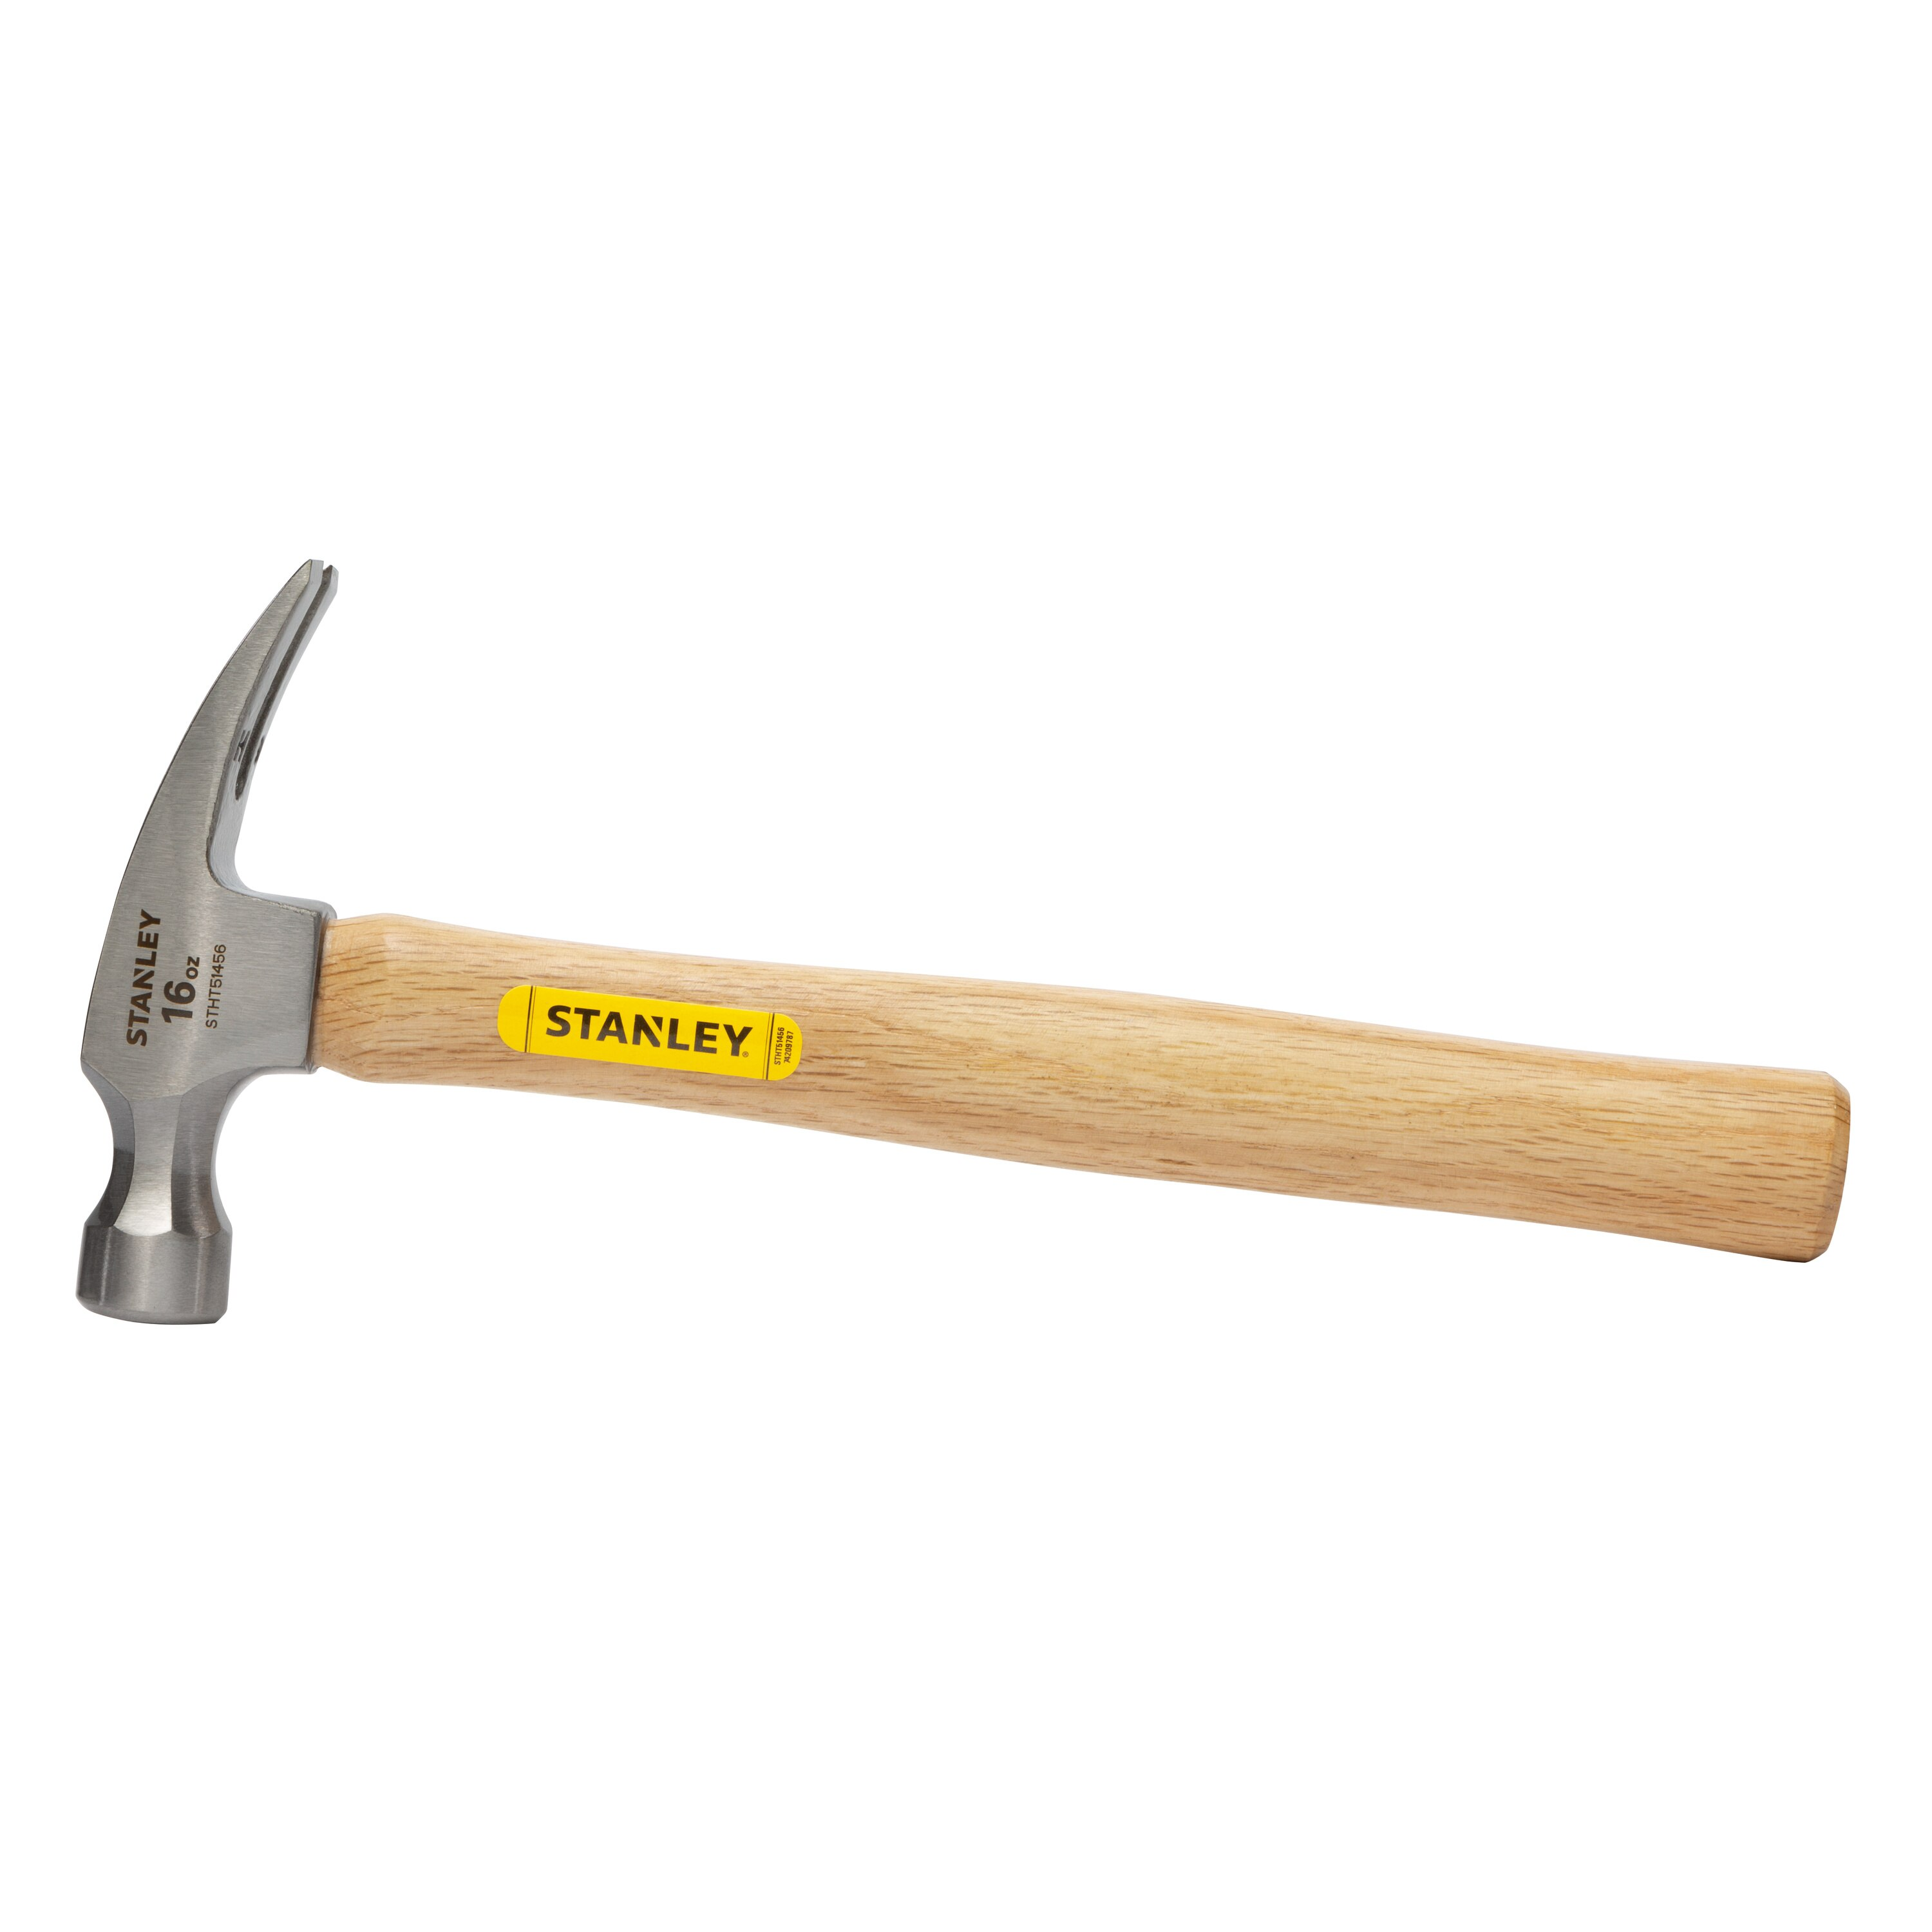 Stanley Tools - 16 OZ RIP CLAW WOOD HANDLE HAMMER - STHT51456